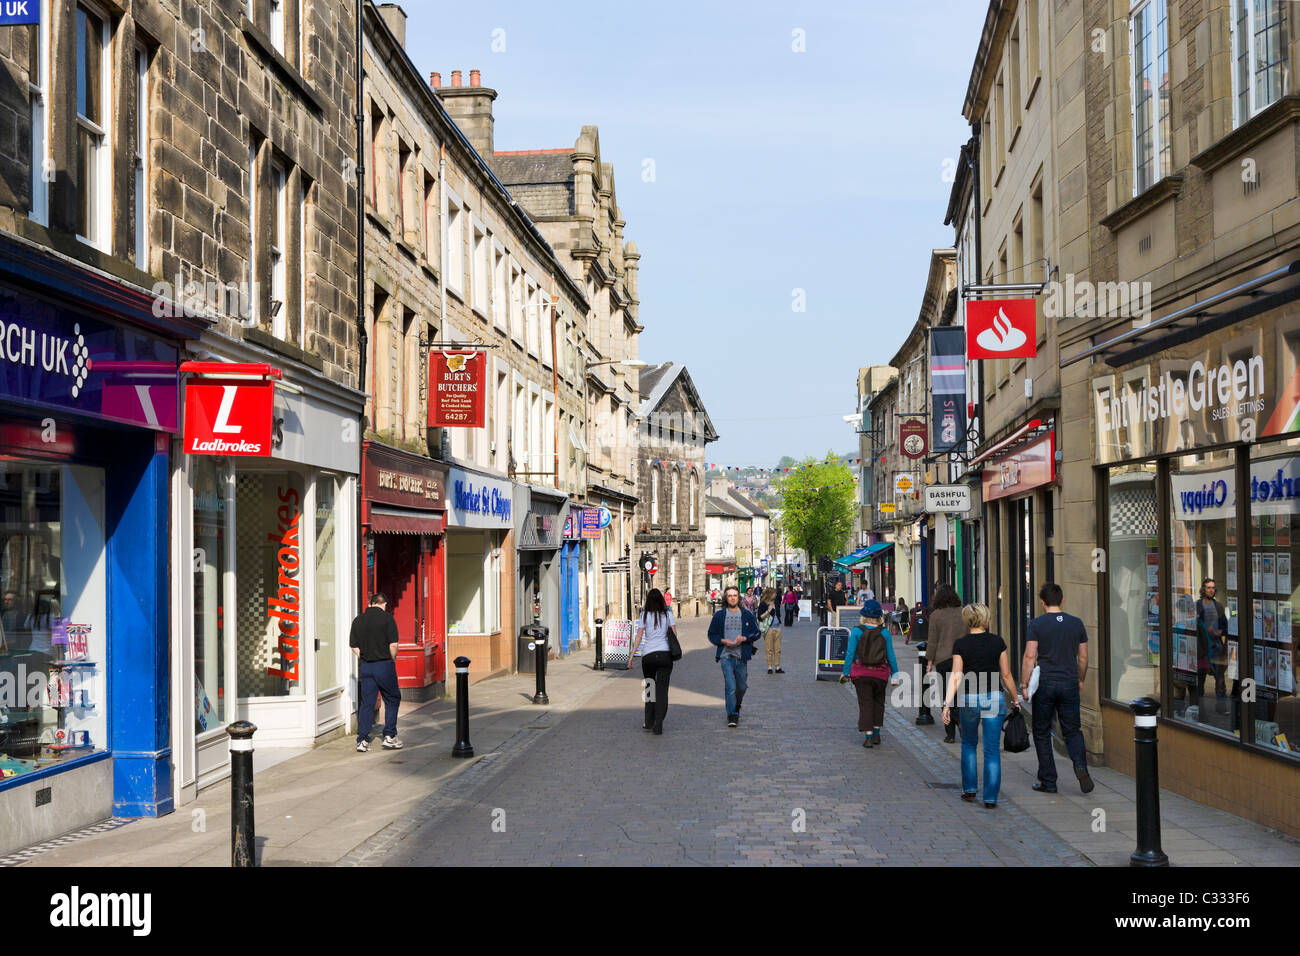 Shops on Market Street in the historic city centre, Lancaster, Lancashire, UK Stock Photo